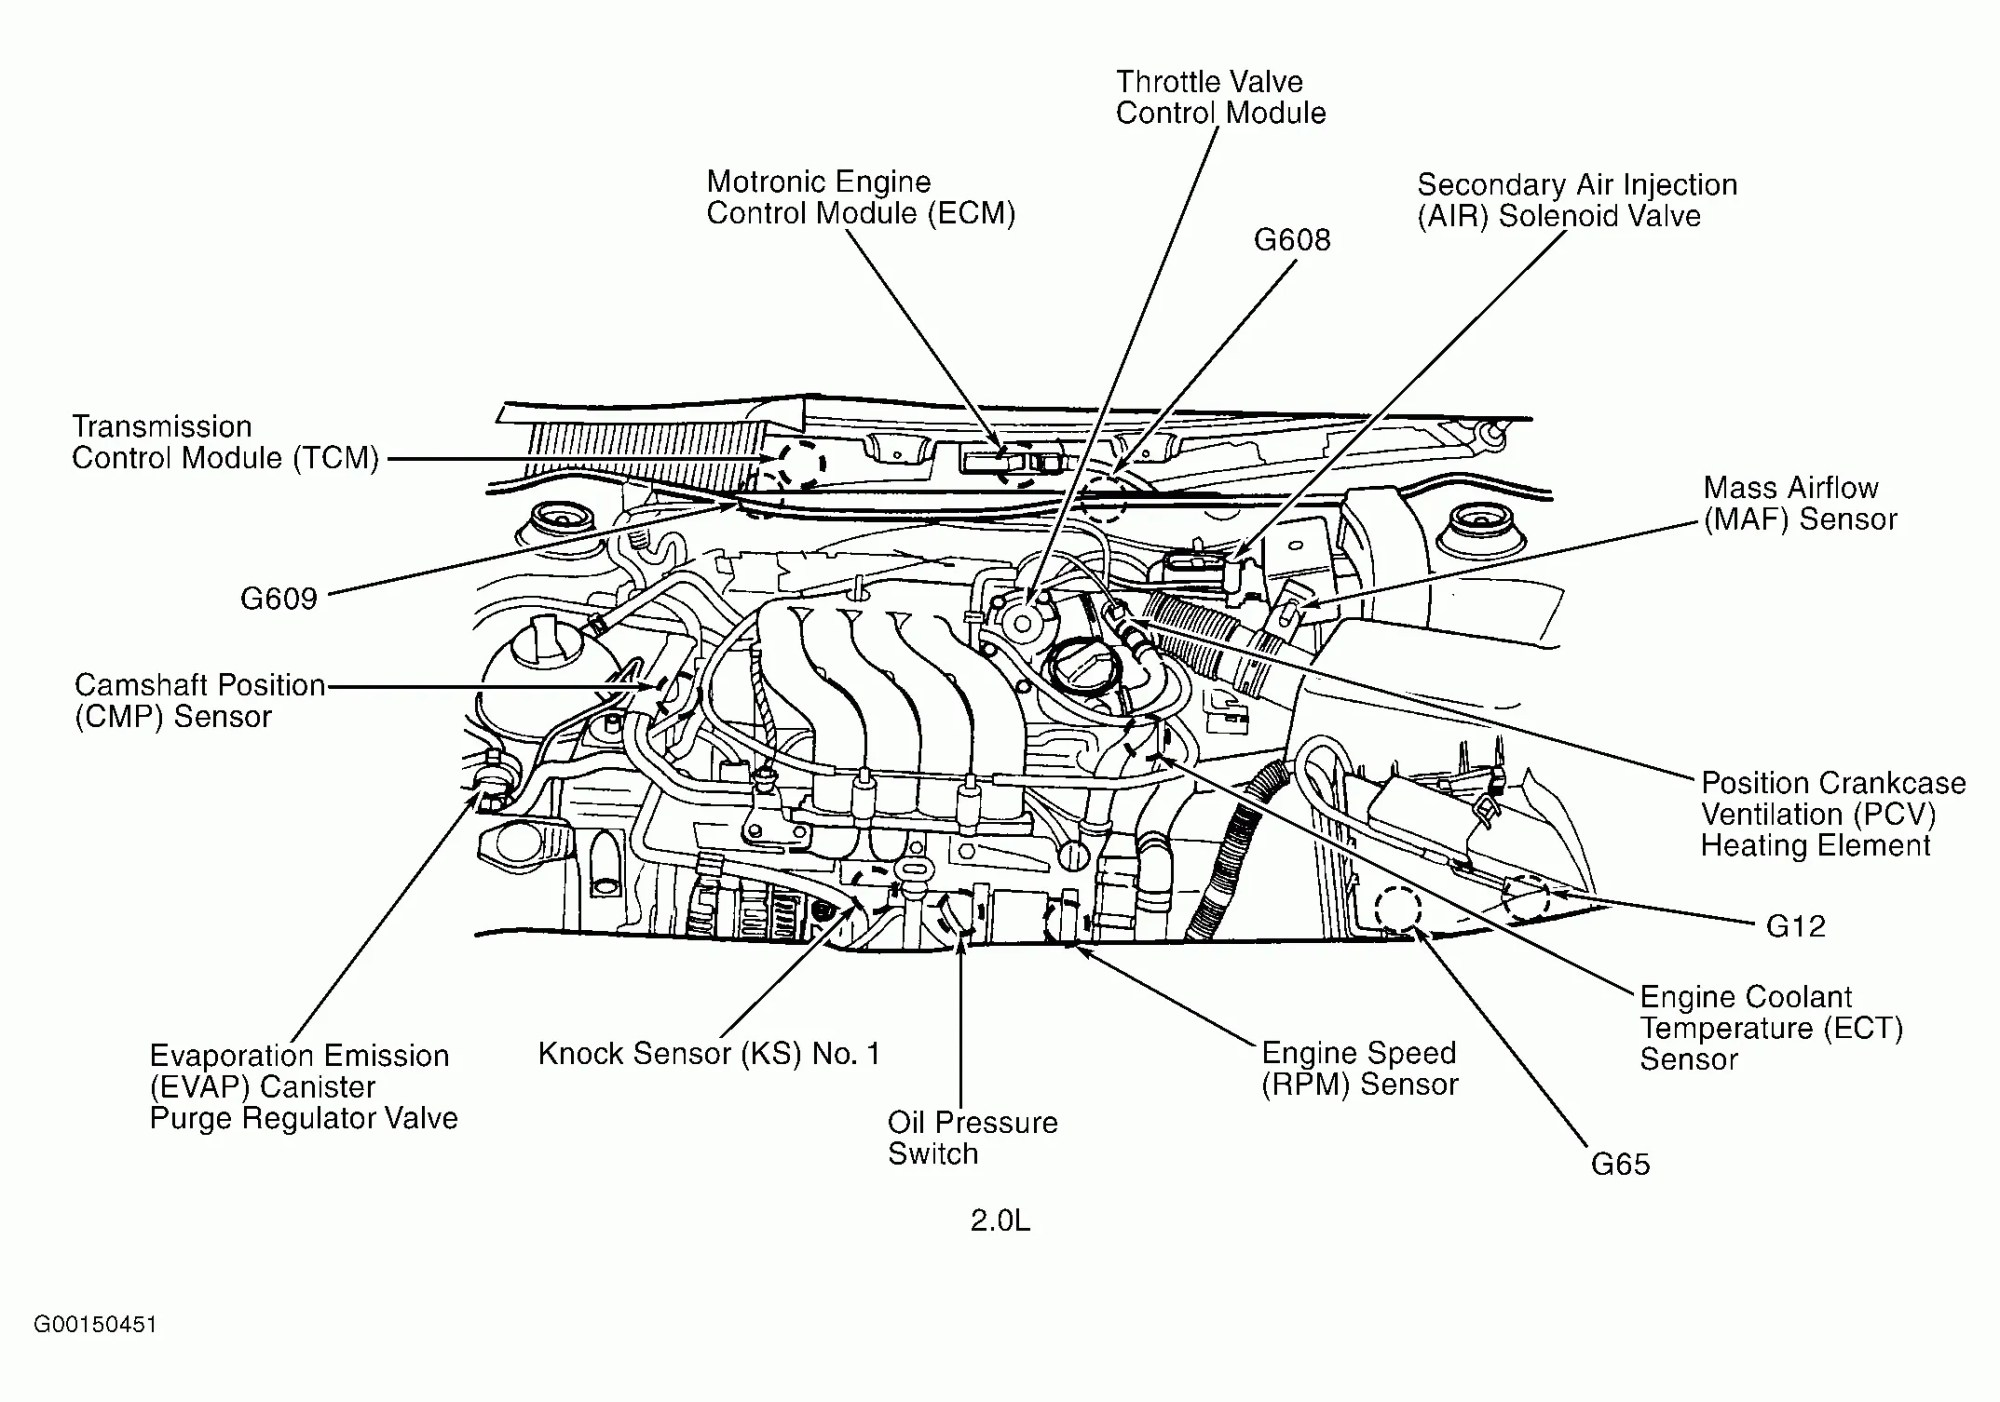 hight resolution of 1996 vw cabrio engine diagram wiring diagram expert 1996 vw gti engine diagram